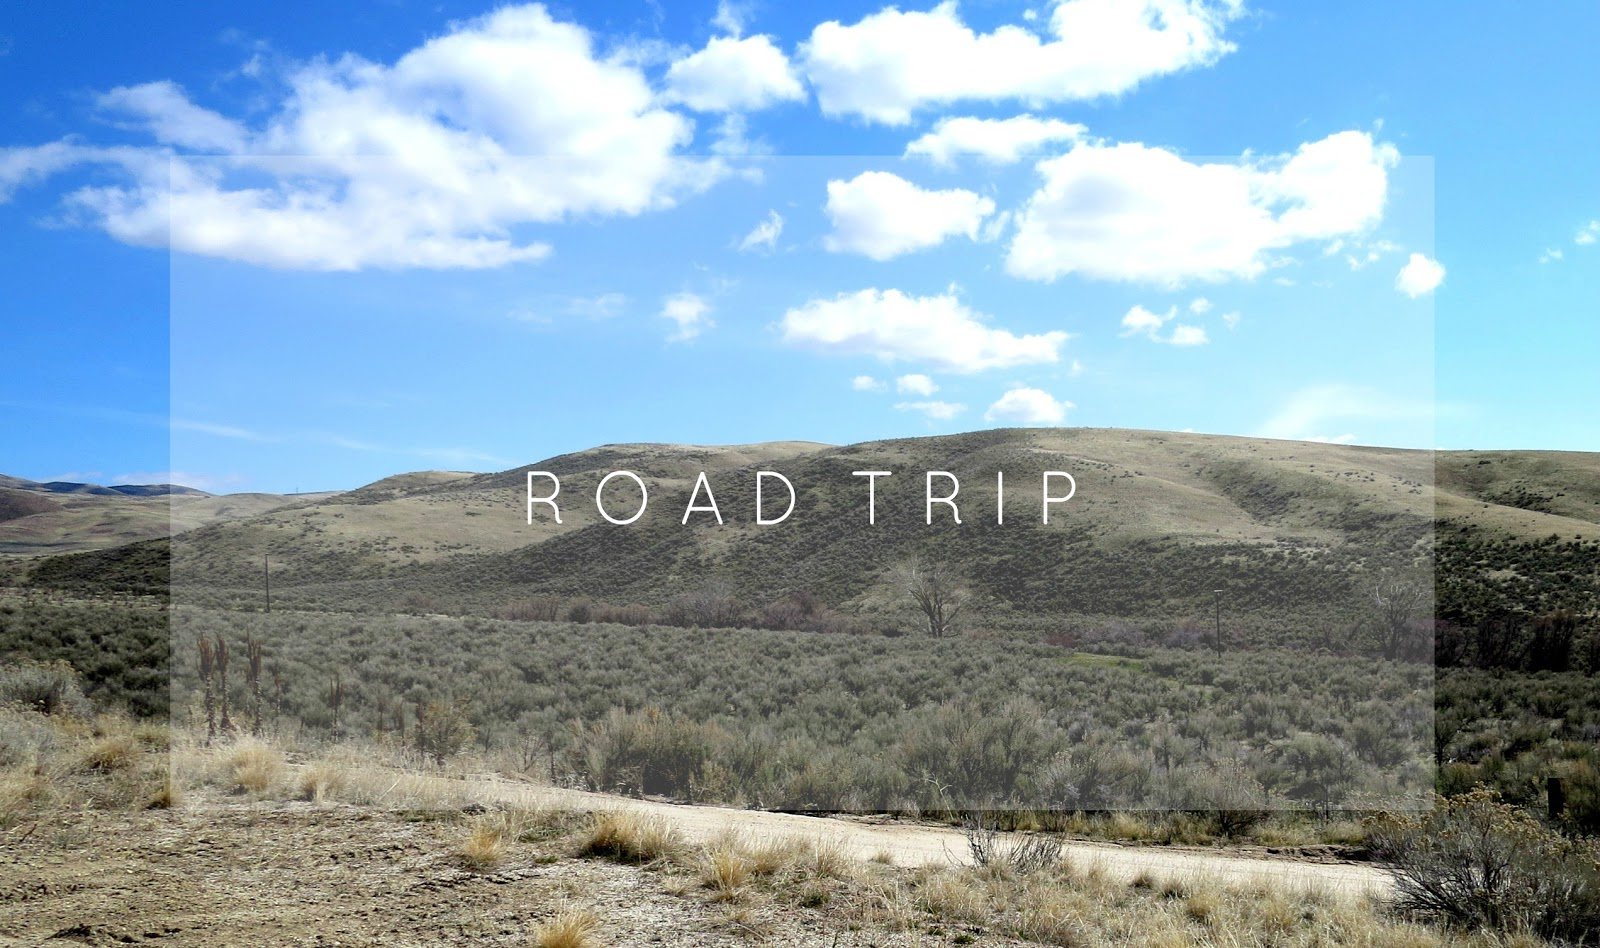 road trip, boise to palm desert